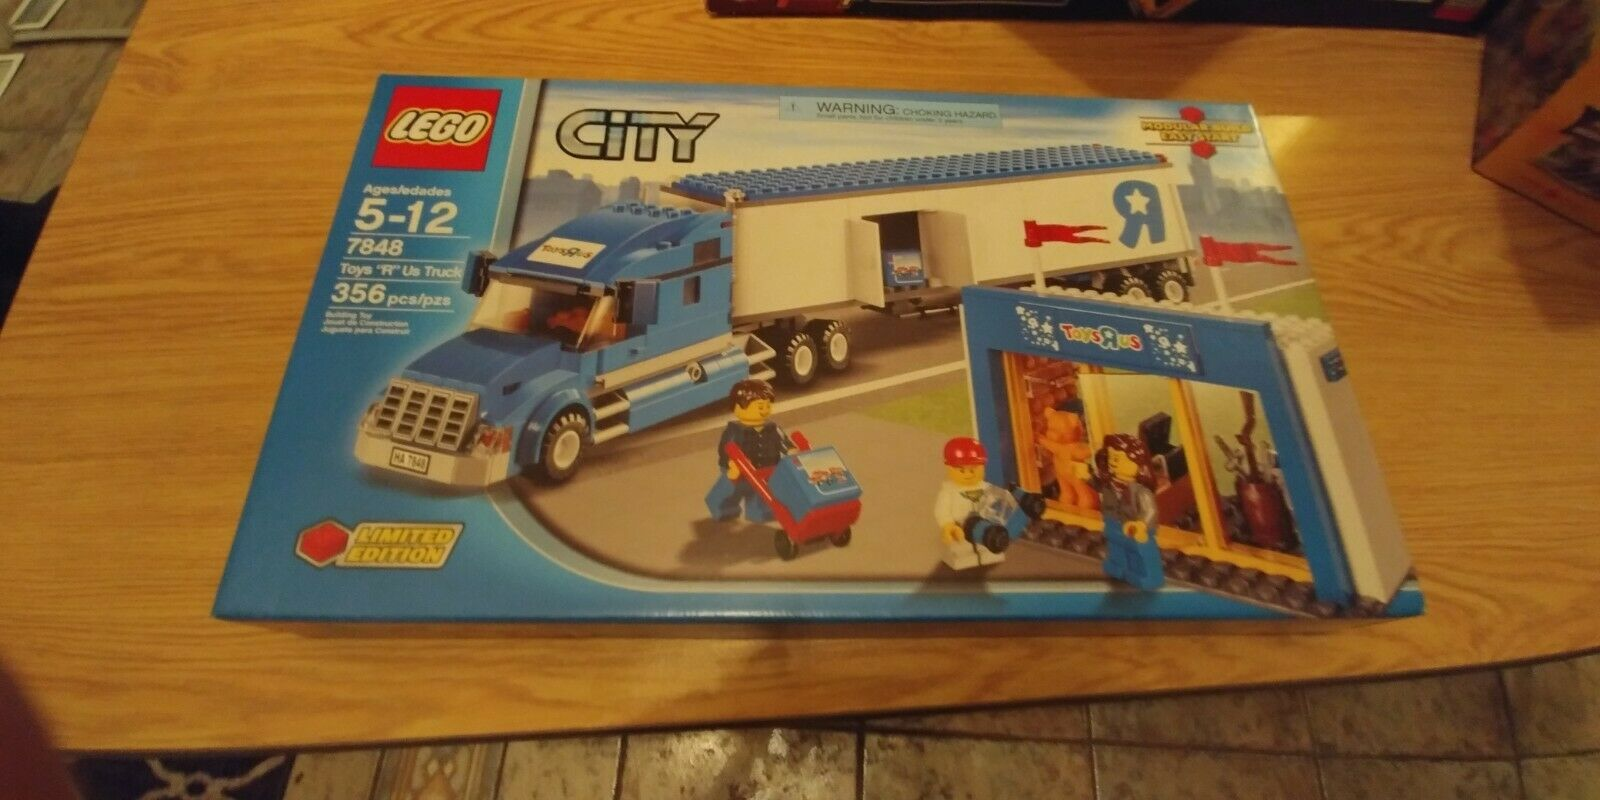 Lego City Toys R Us Truck 7848 For Sale Online Ebay